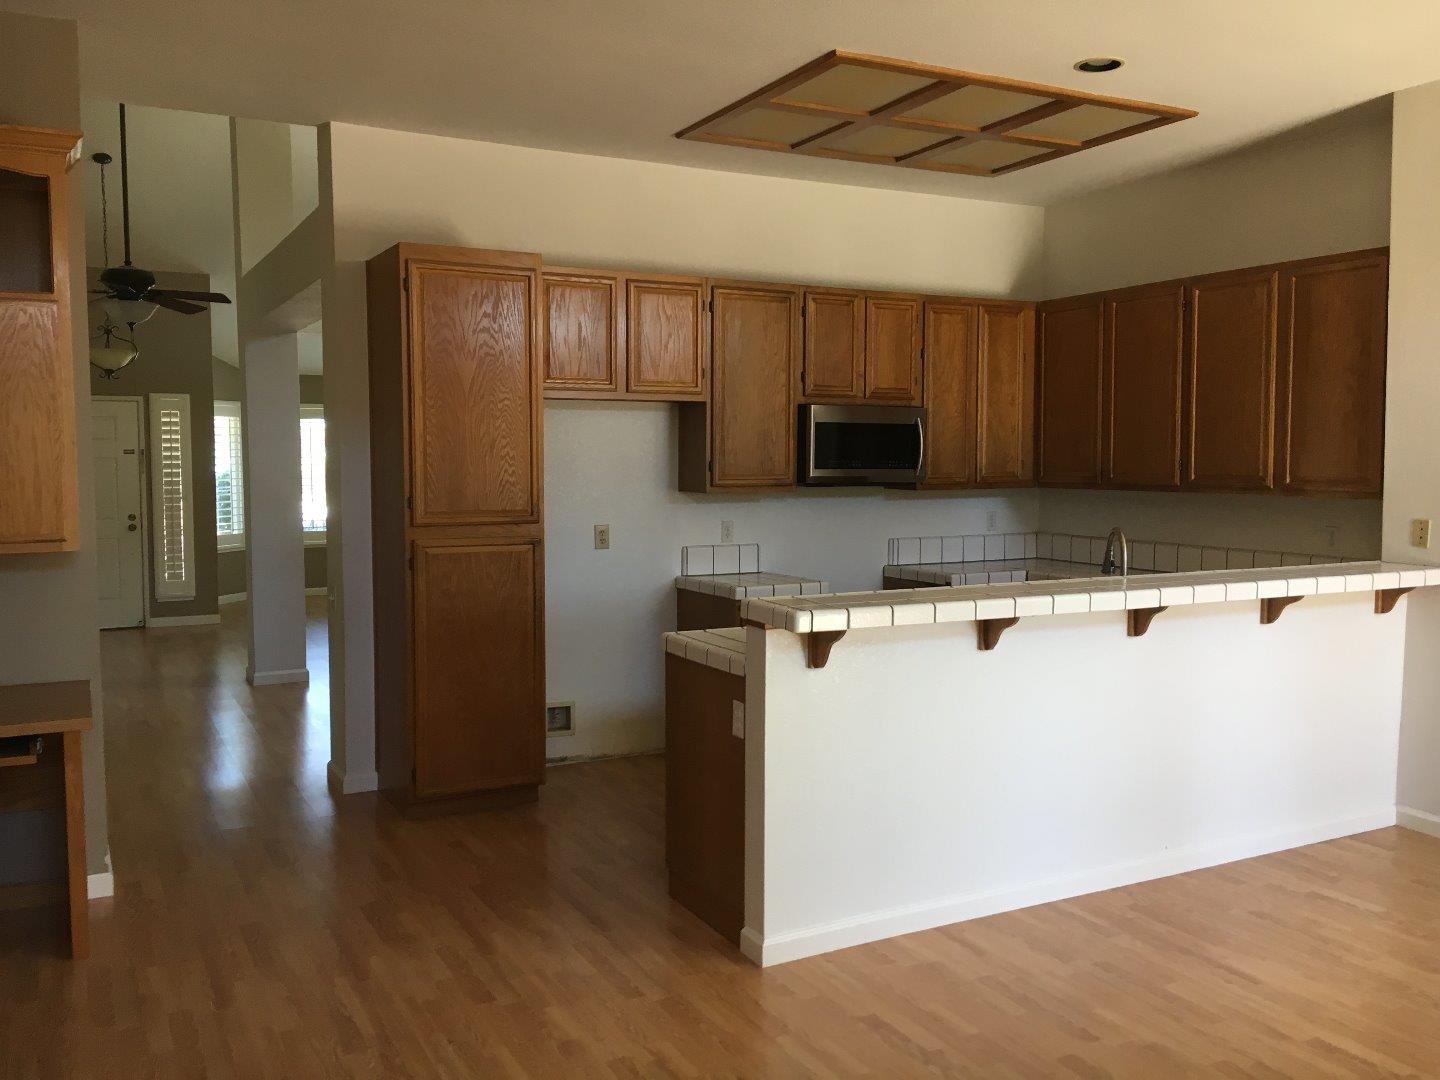 Additional photo for property listing at 1410 Falcon Court  Gilroy, California 95020 United States